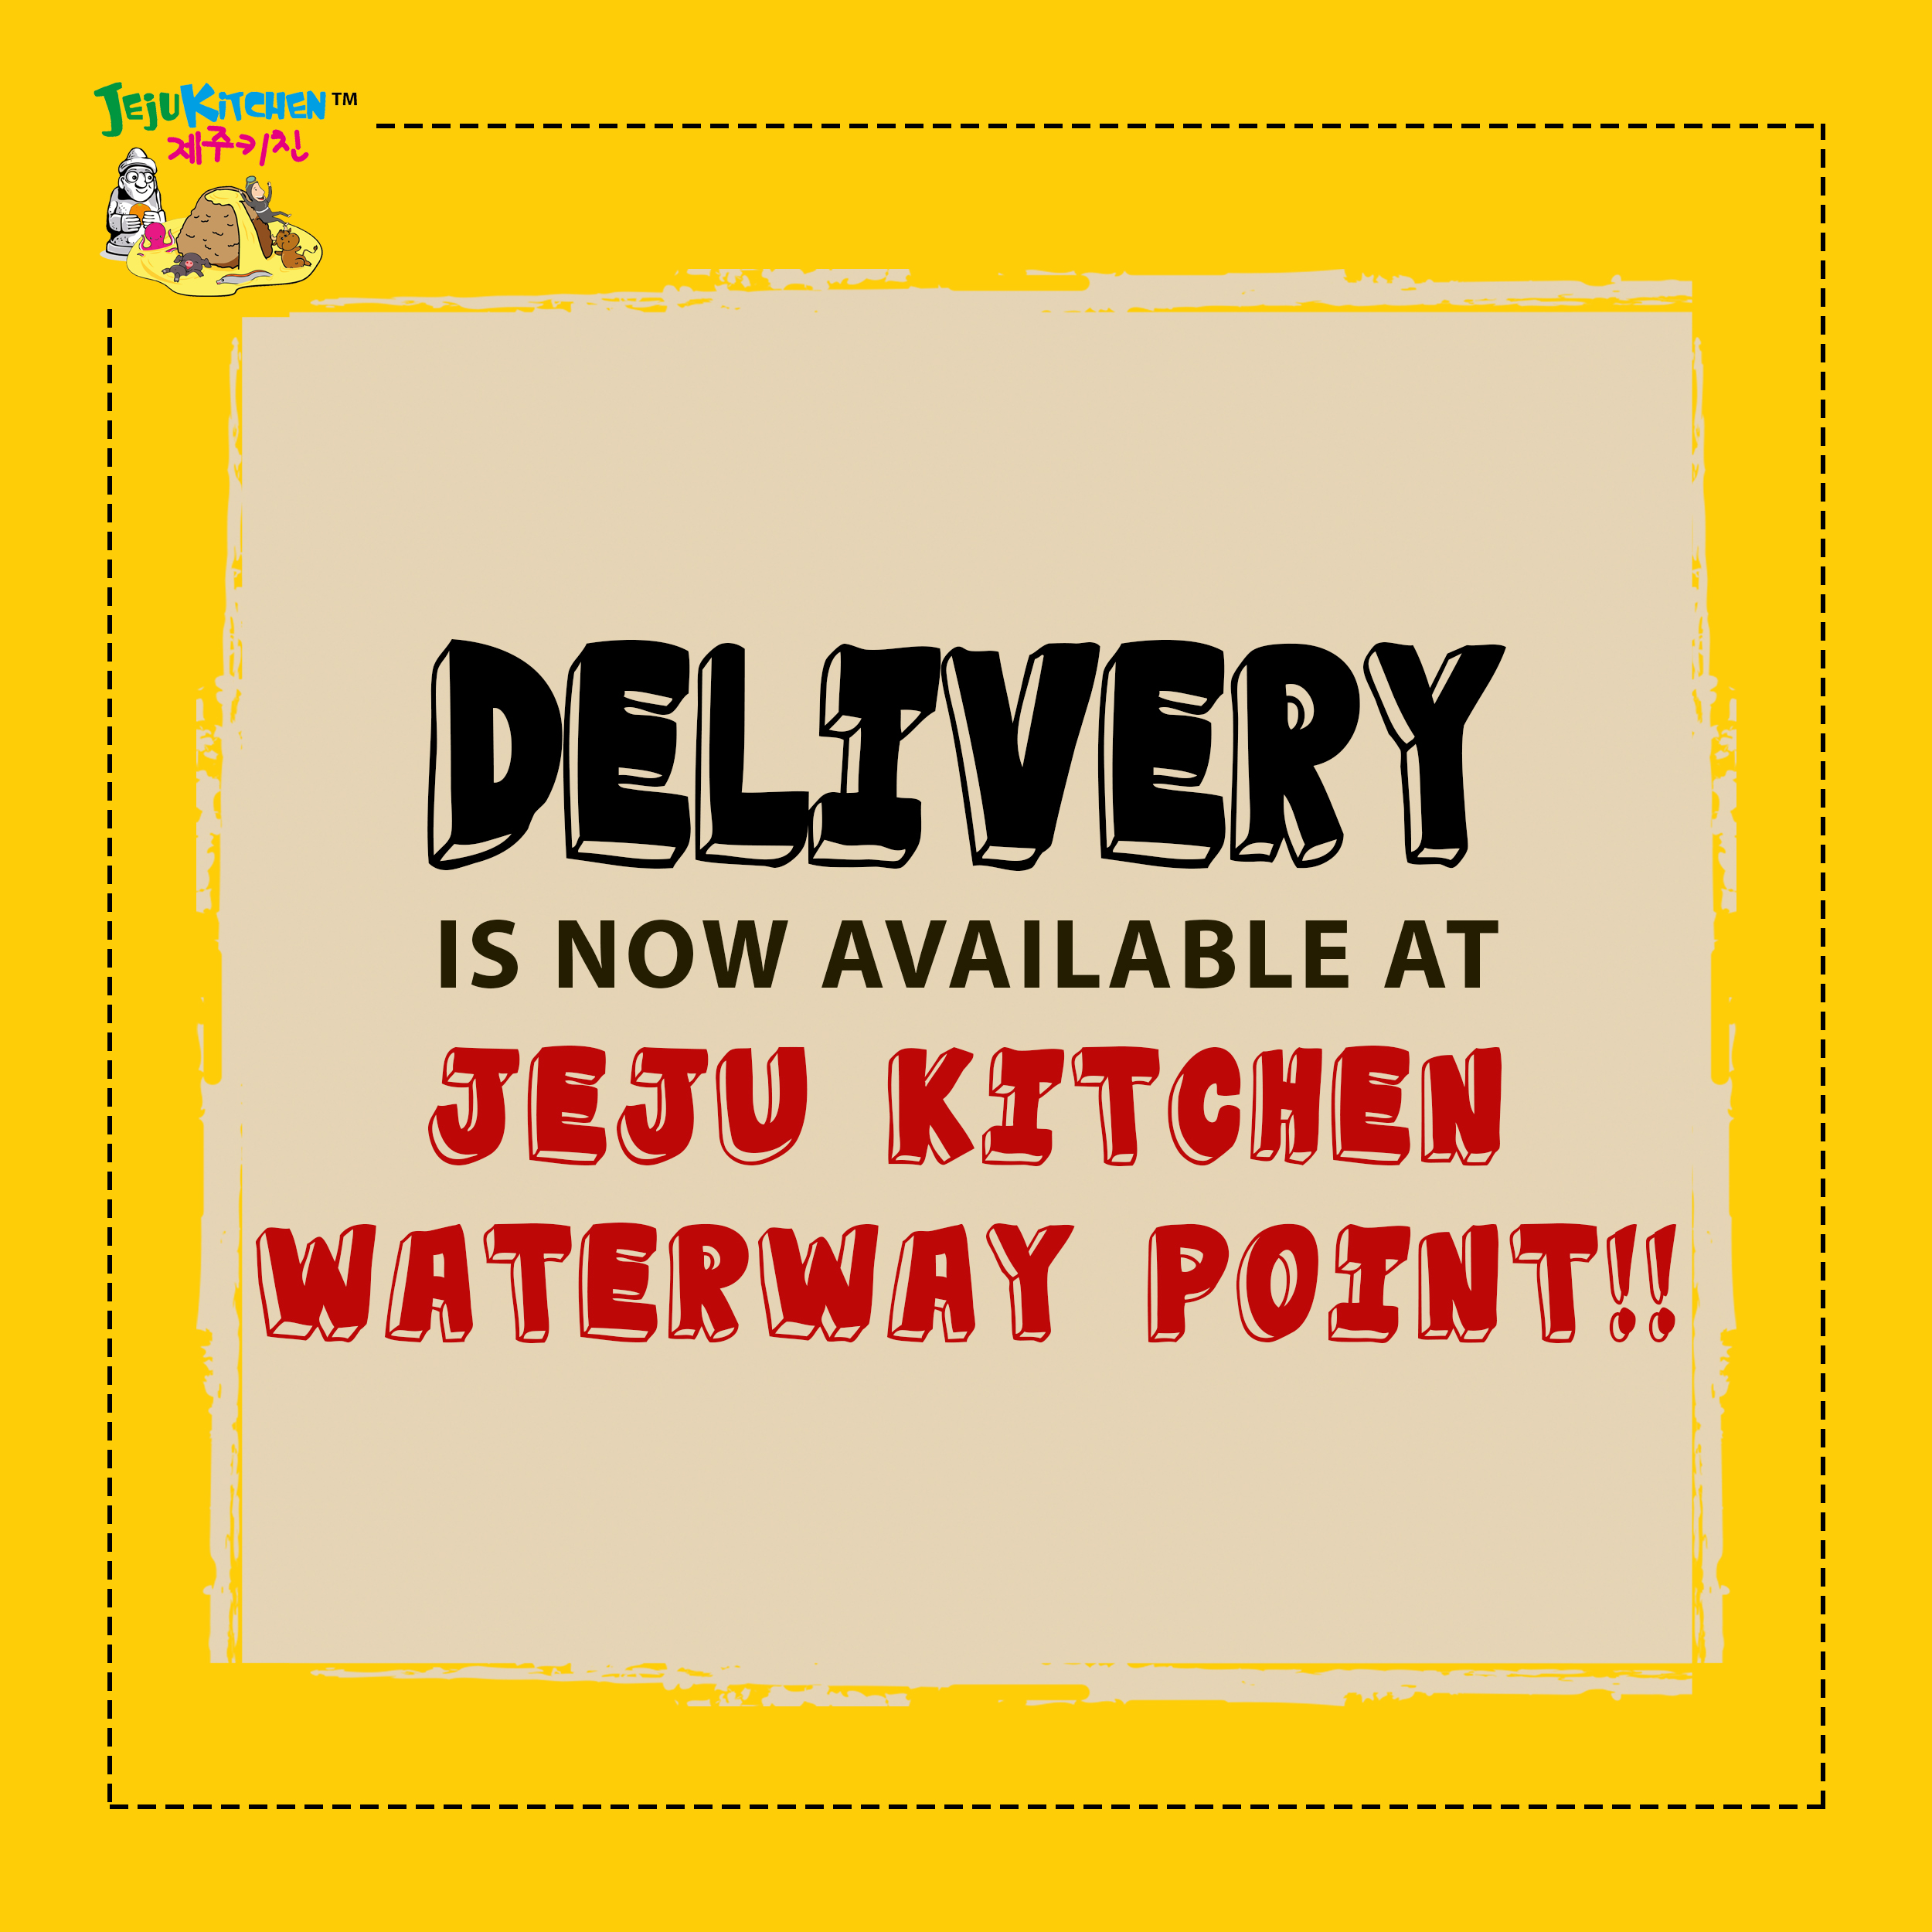 Delivery is now AVAILABLE at Jeju Kitchen Waterway Point !!